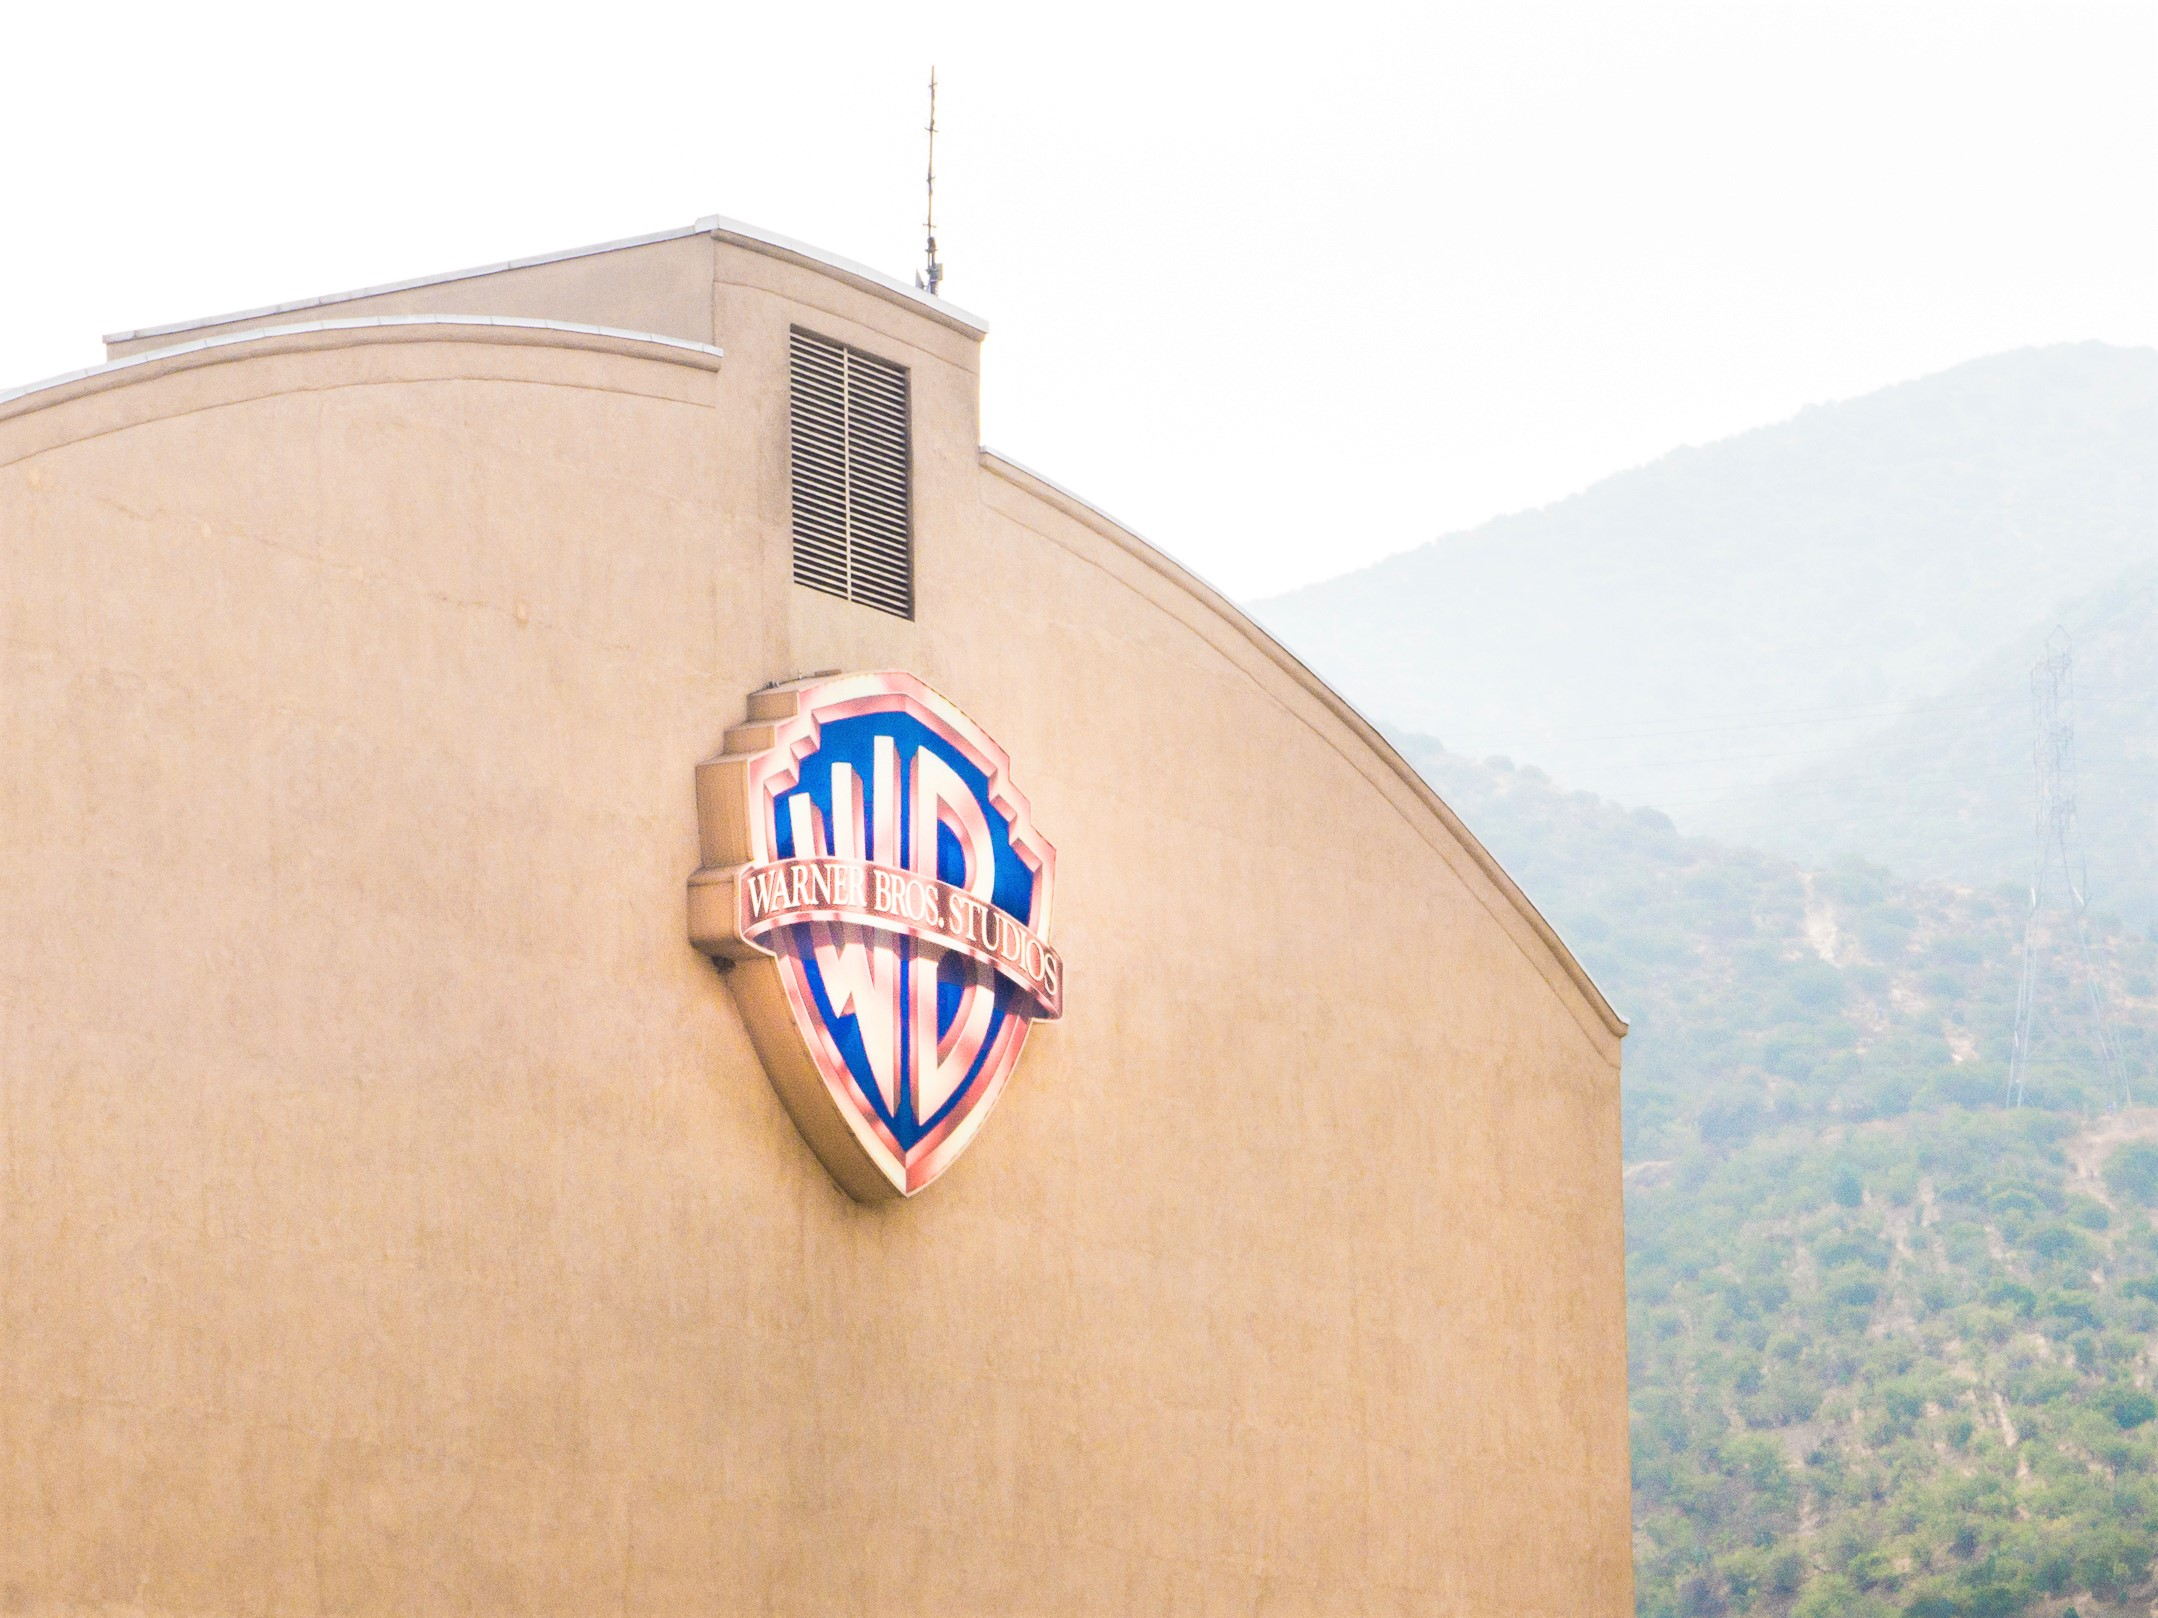 Warner Bros. Studios Logo on Building